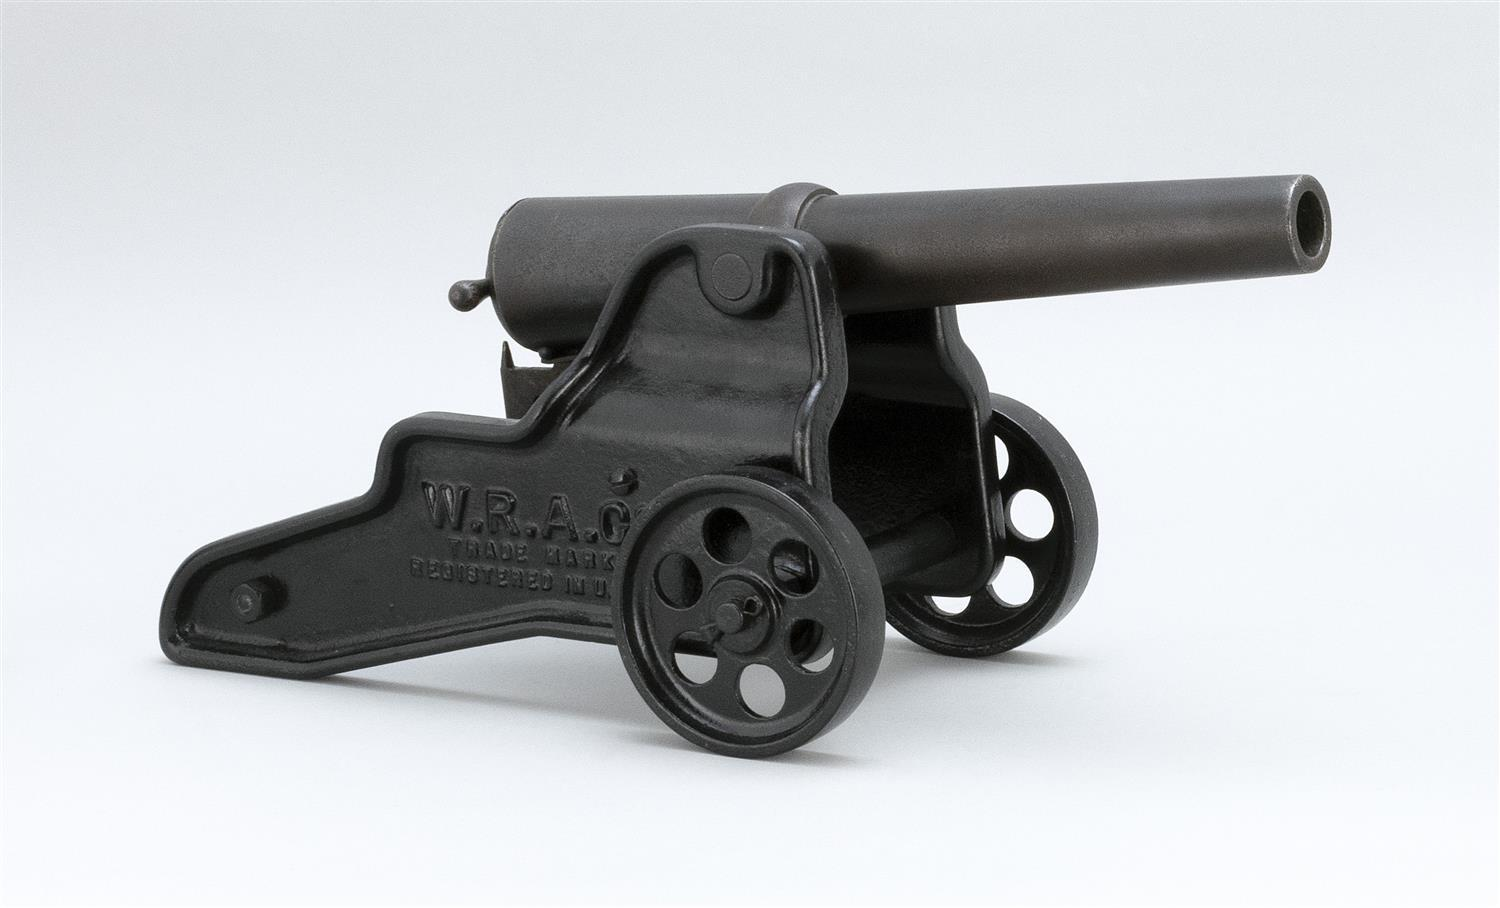 """WINCHESTER SIGNAL CANNON 10-ga., no serial number. Finish loss and wear. Length of barrel 12"""". Overall length 18""""."""